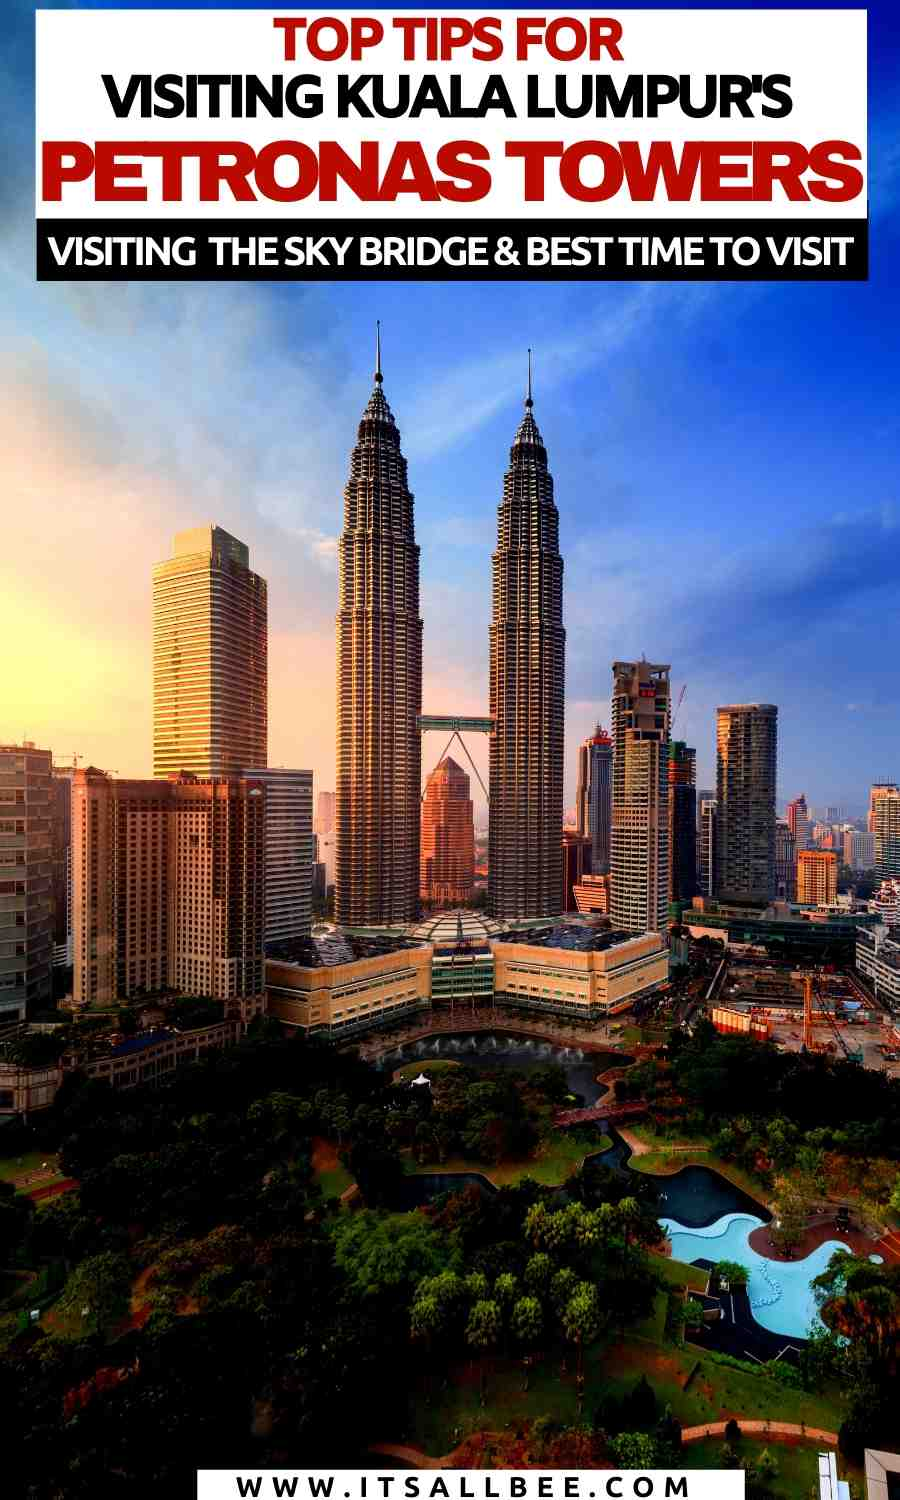 petronas towers tickets online booking | visiting the petronas towers